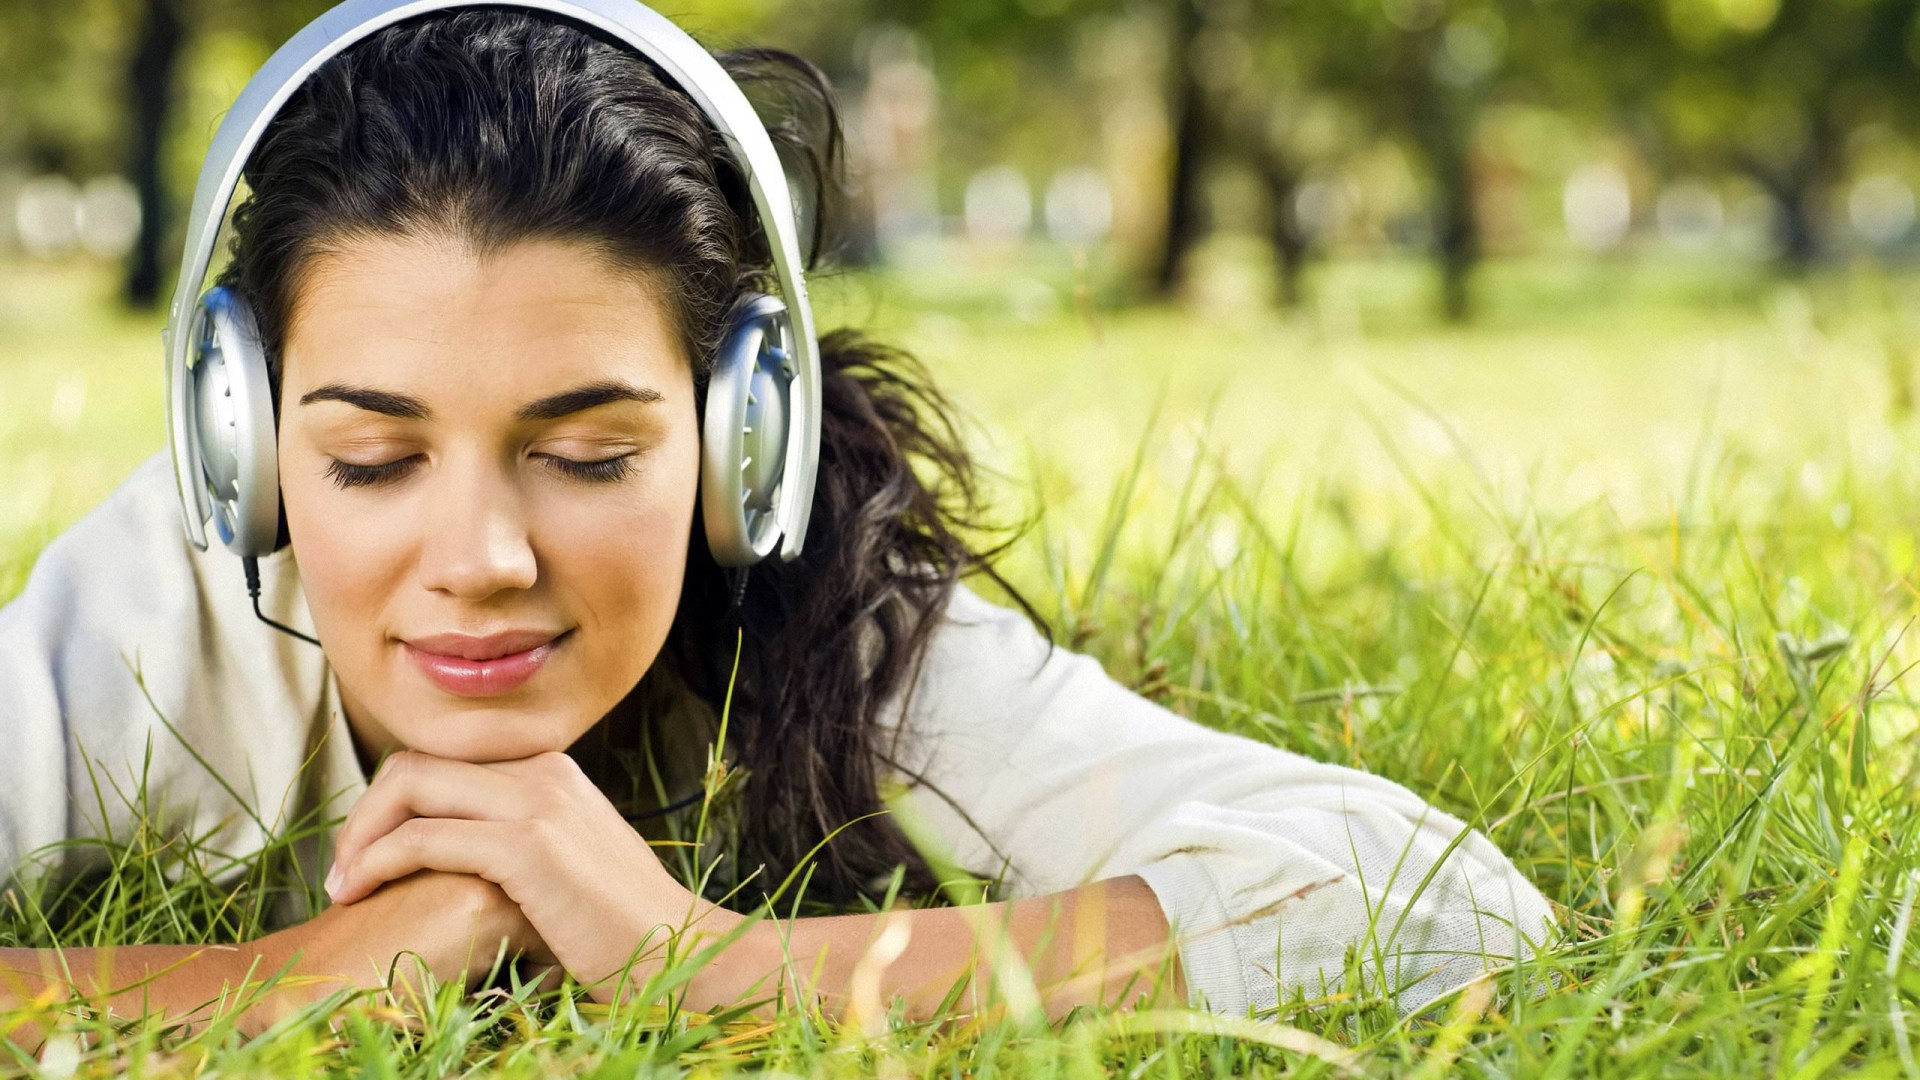 5 health benefits of music